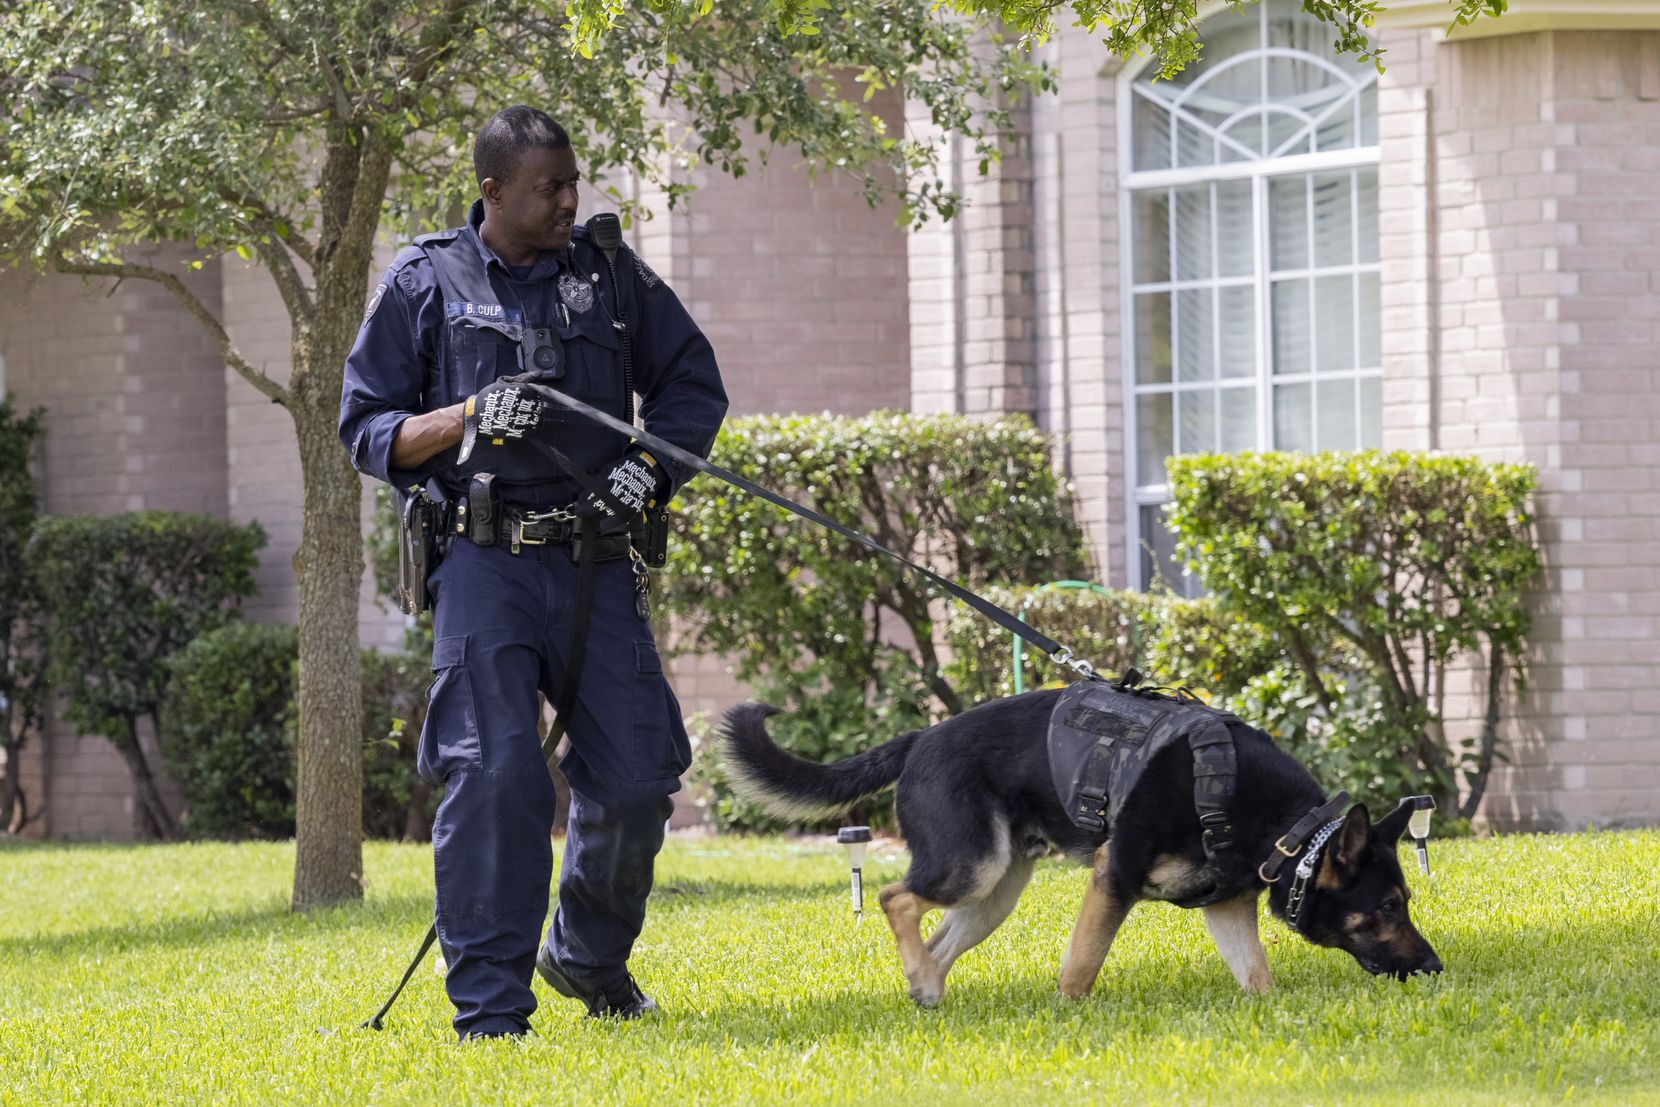 A dog with the Dallas police K-9 unit was put to work around the crime scene Saturday.